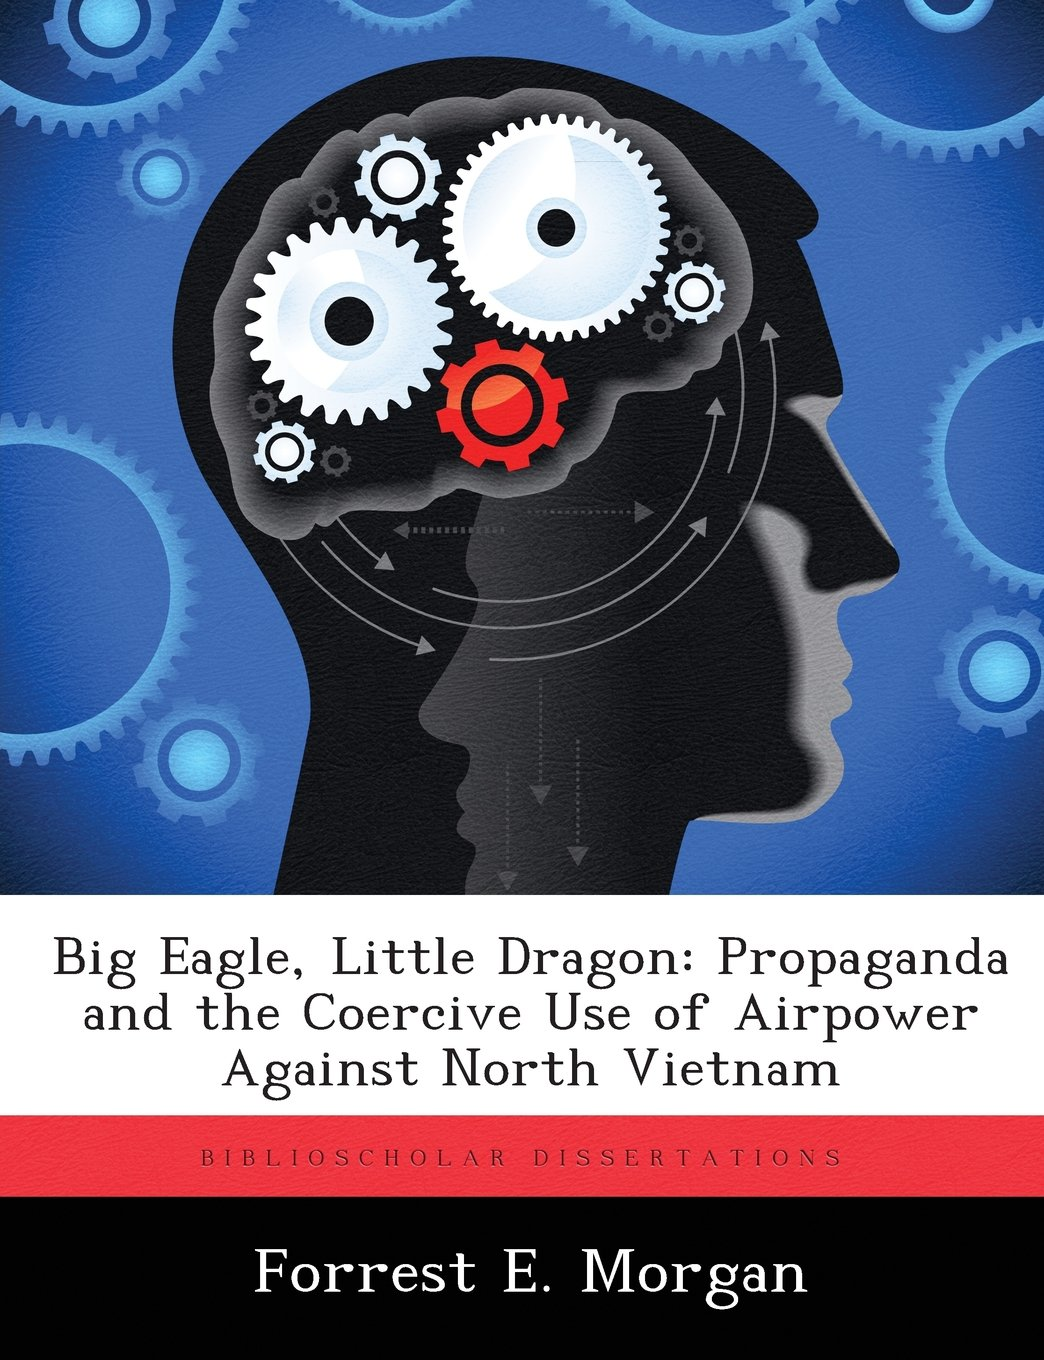 Big Eagle, Little Dragon: Propaganda and the Coercive Use of Airpower Against North Vietnam PDF